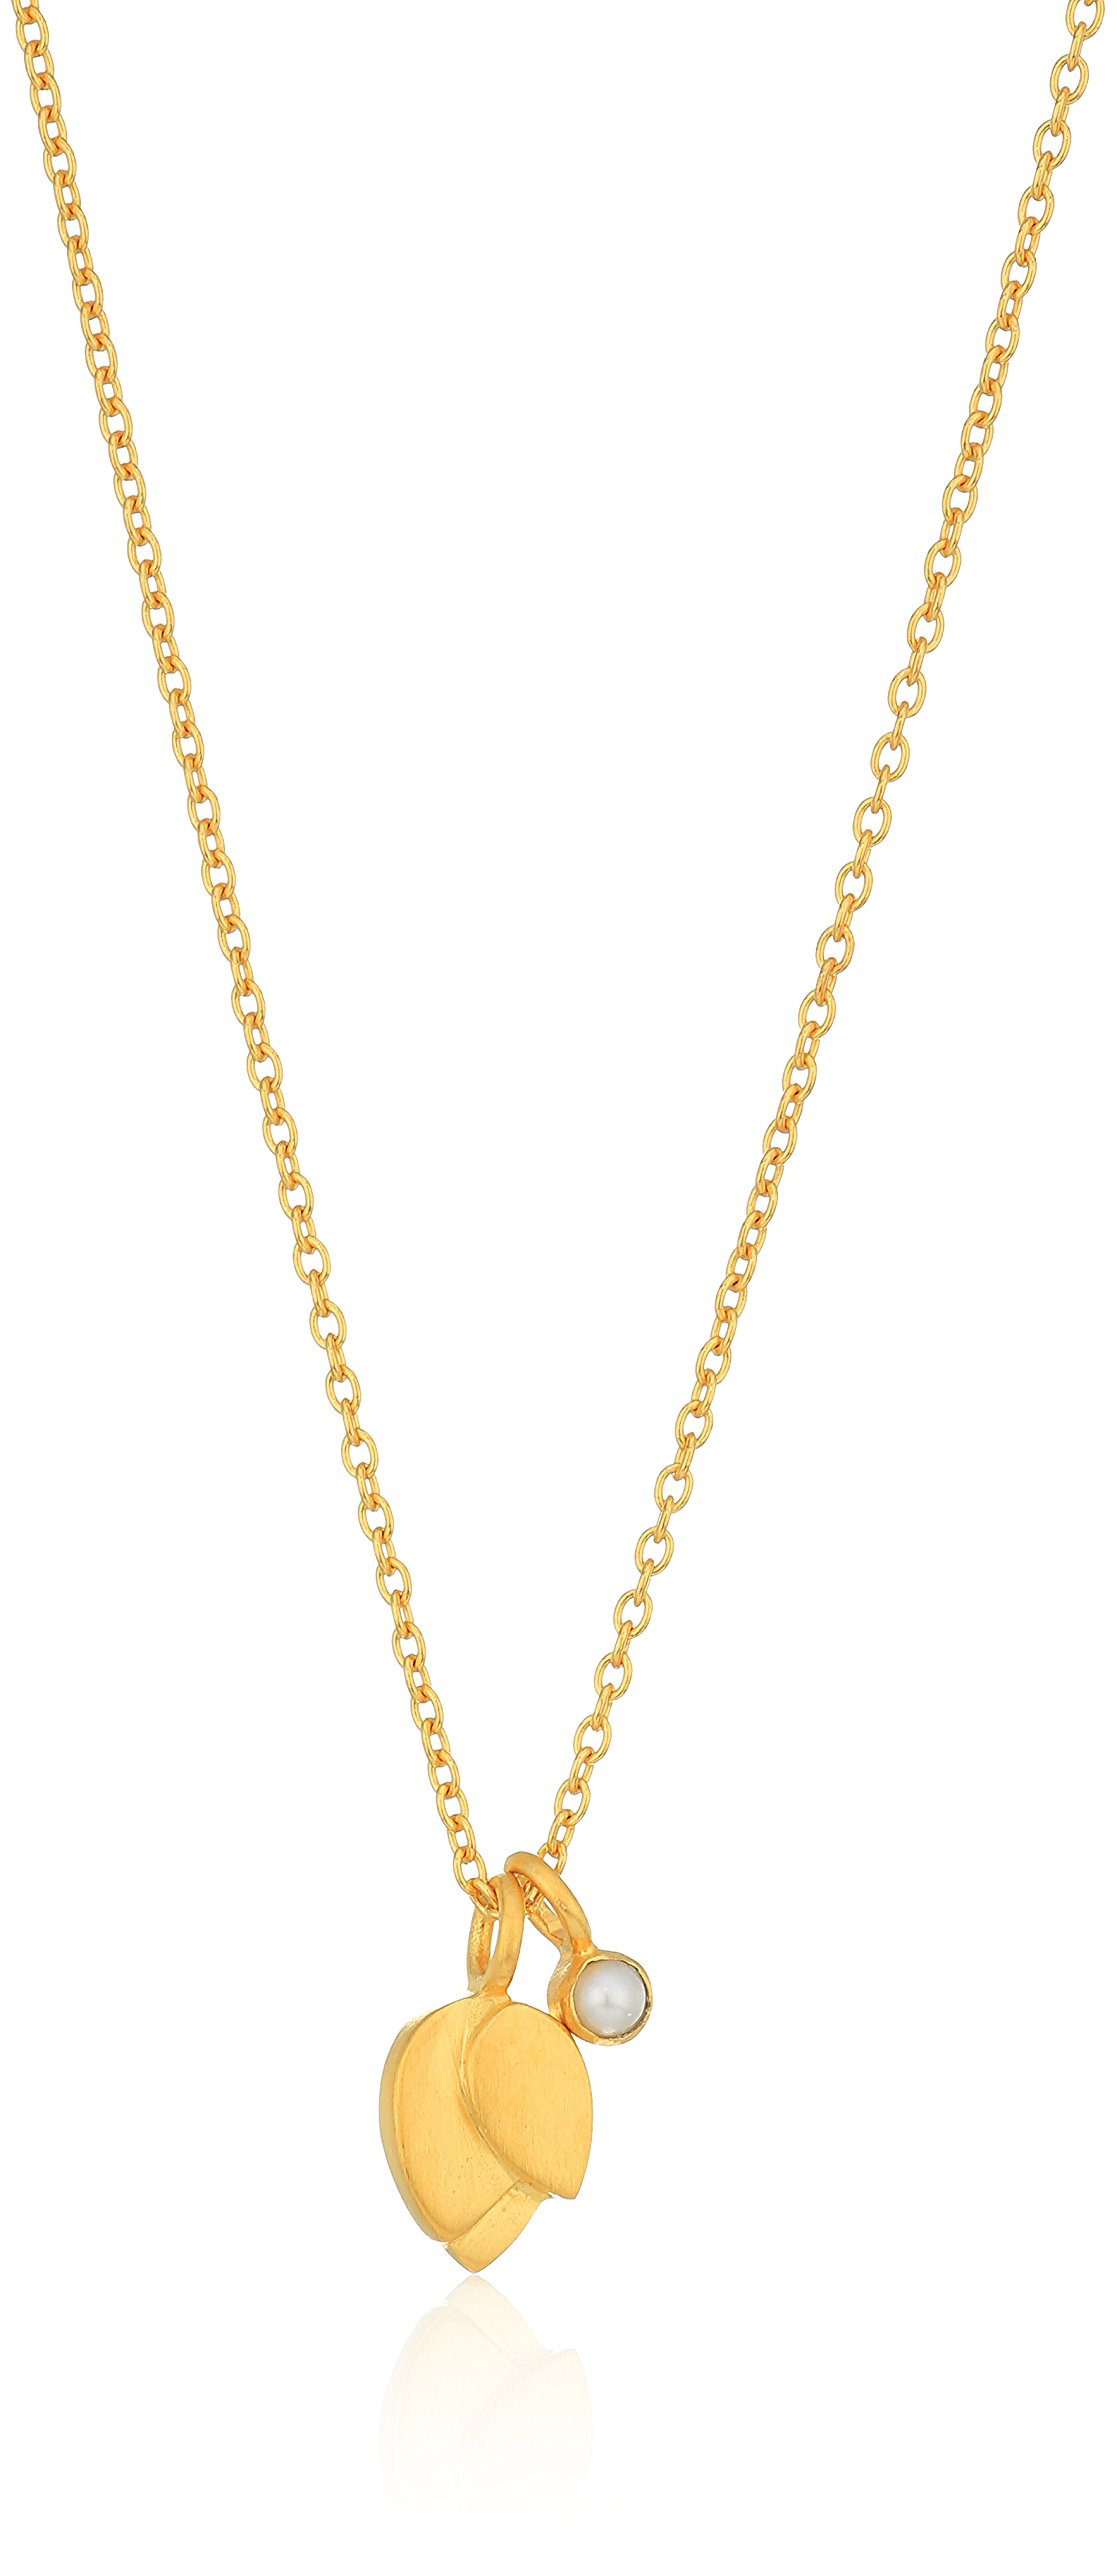 Satya Jewelry Pearl Gold Plate Lotus Petal Birthstone Pendant Necklace, 18-Inch, White